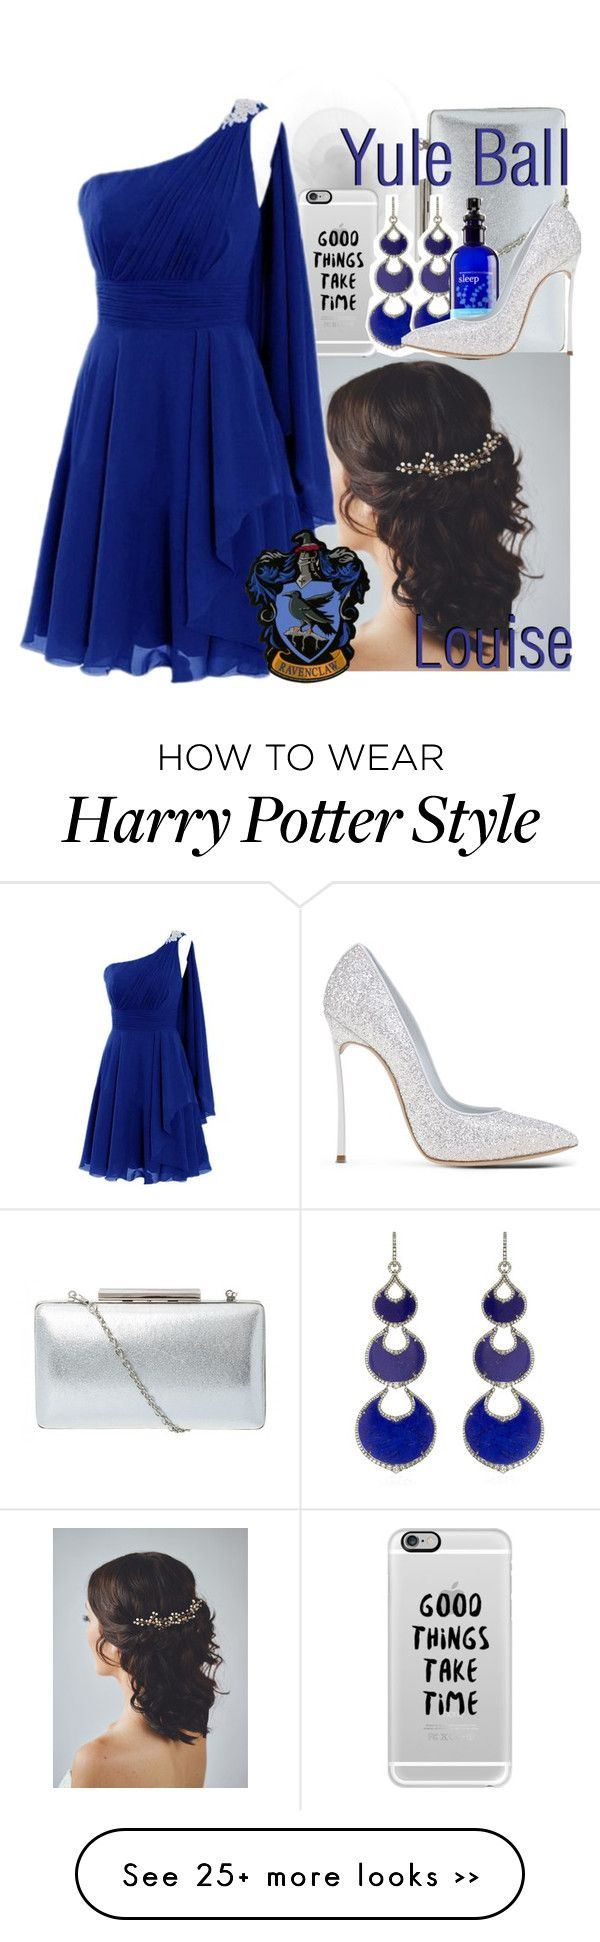 """Ravenclaw: Yule Ball (Louise)"" by potterzodiacs on Polyvore featuring Casetify, Annoushka and Casadei"